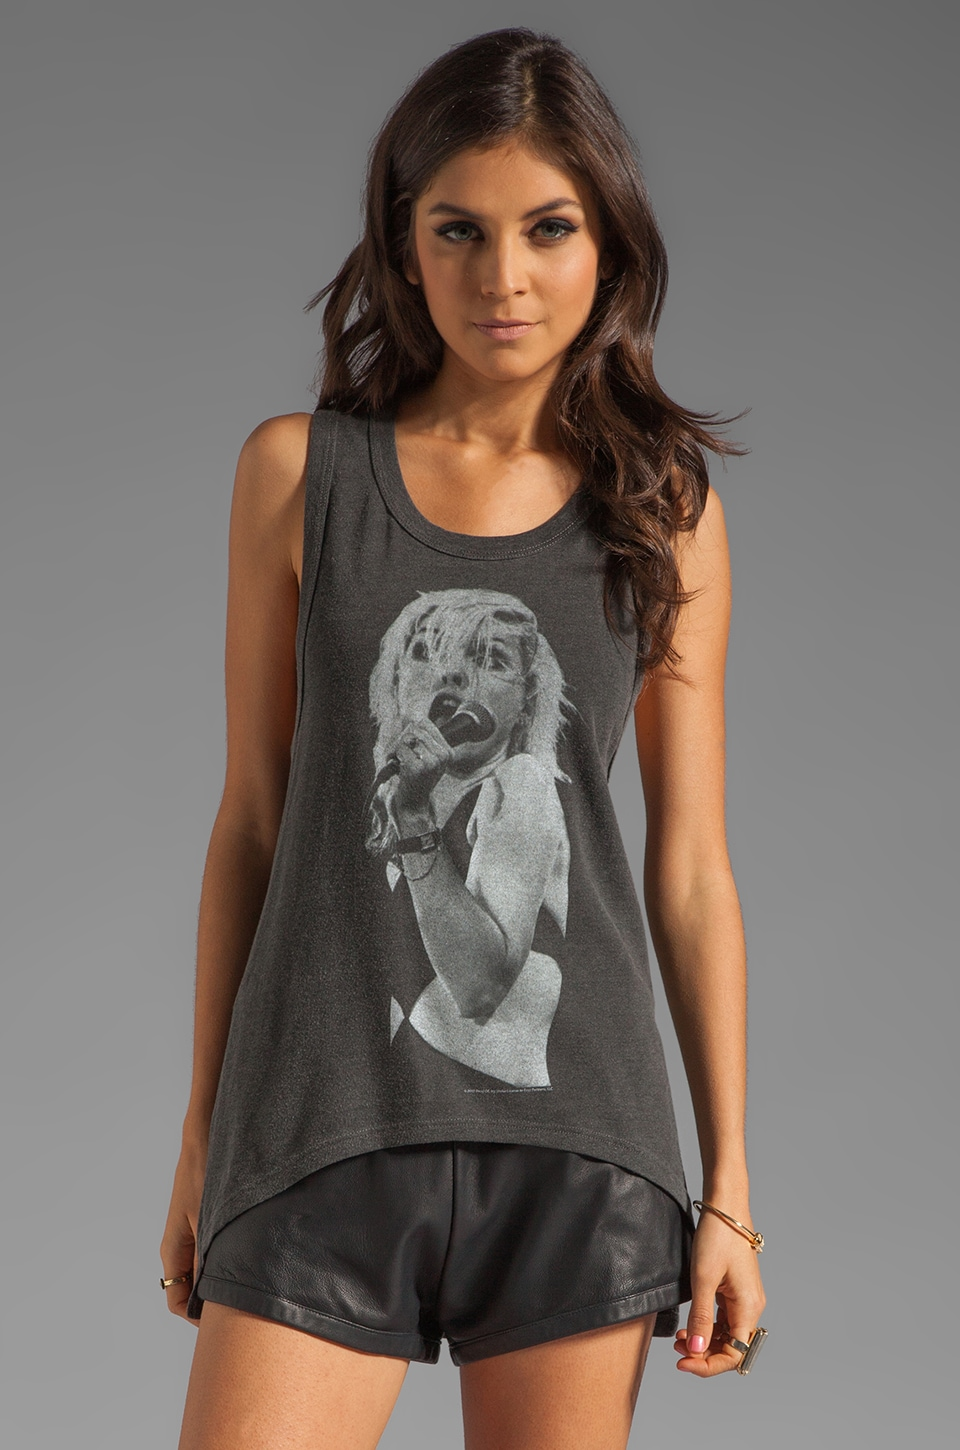 Chaser Blondie NYC Tank in Pigment Black